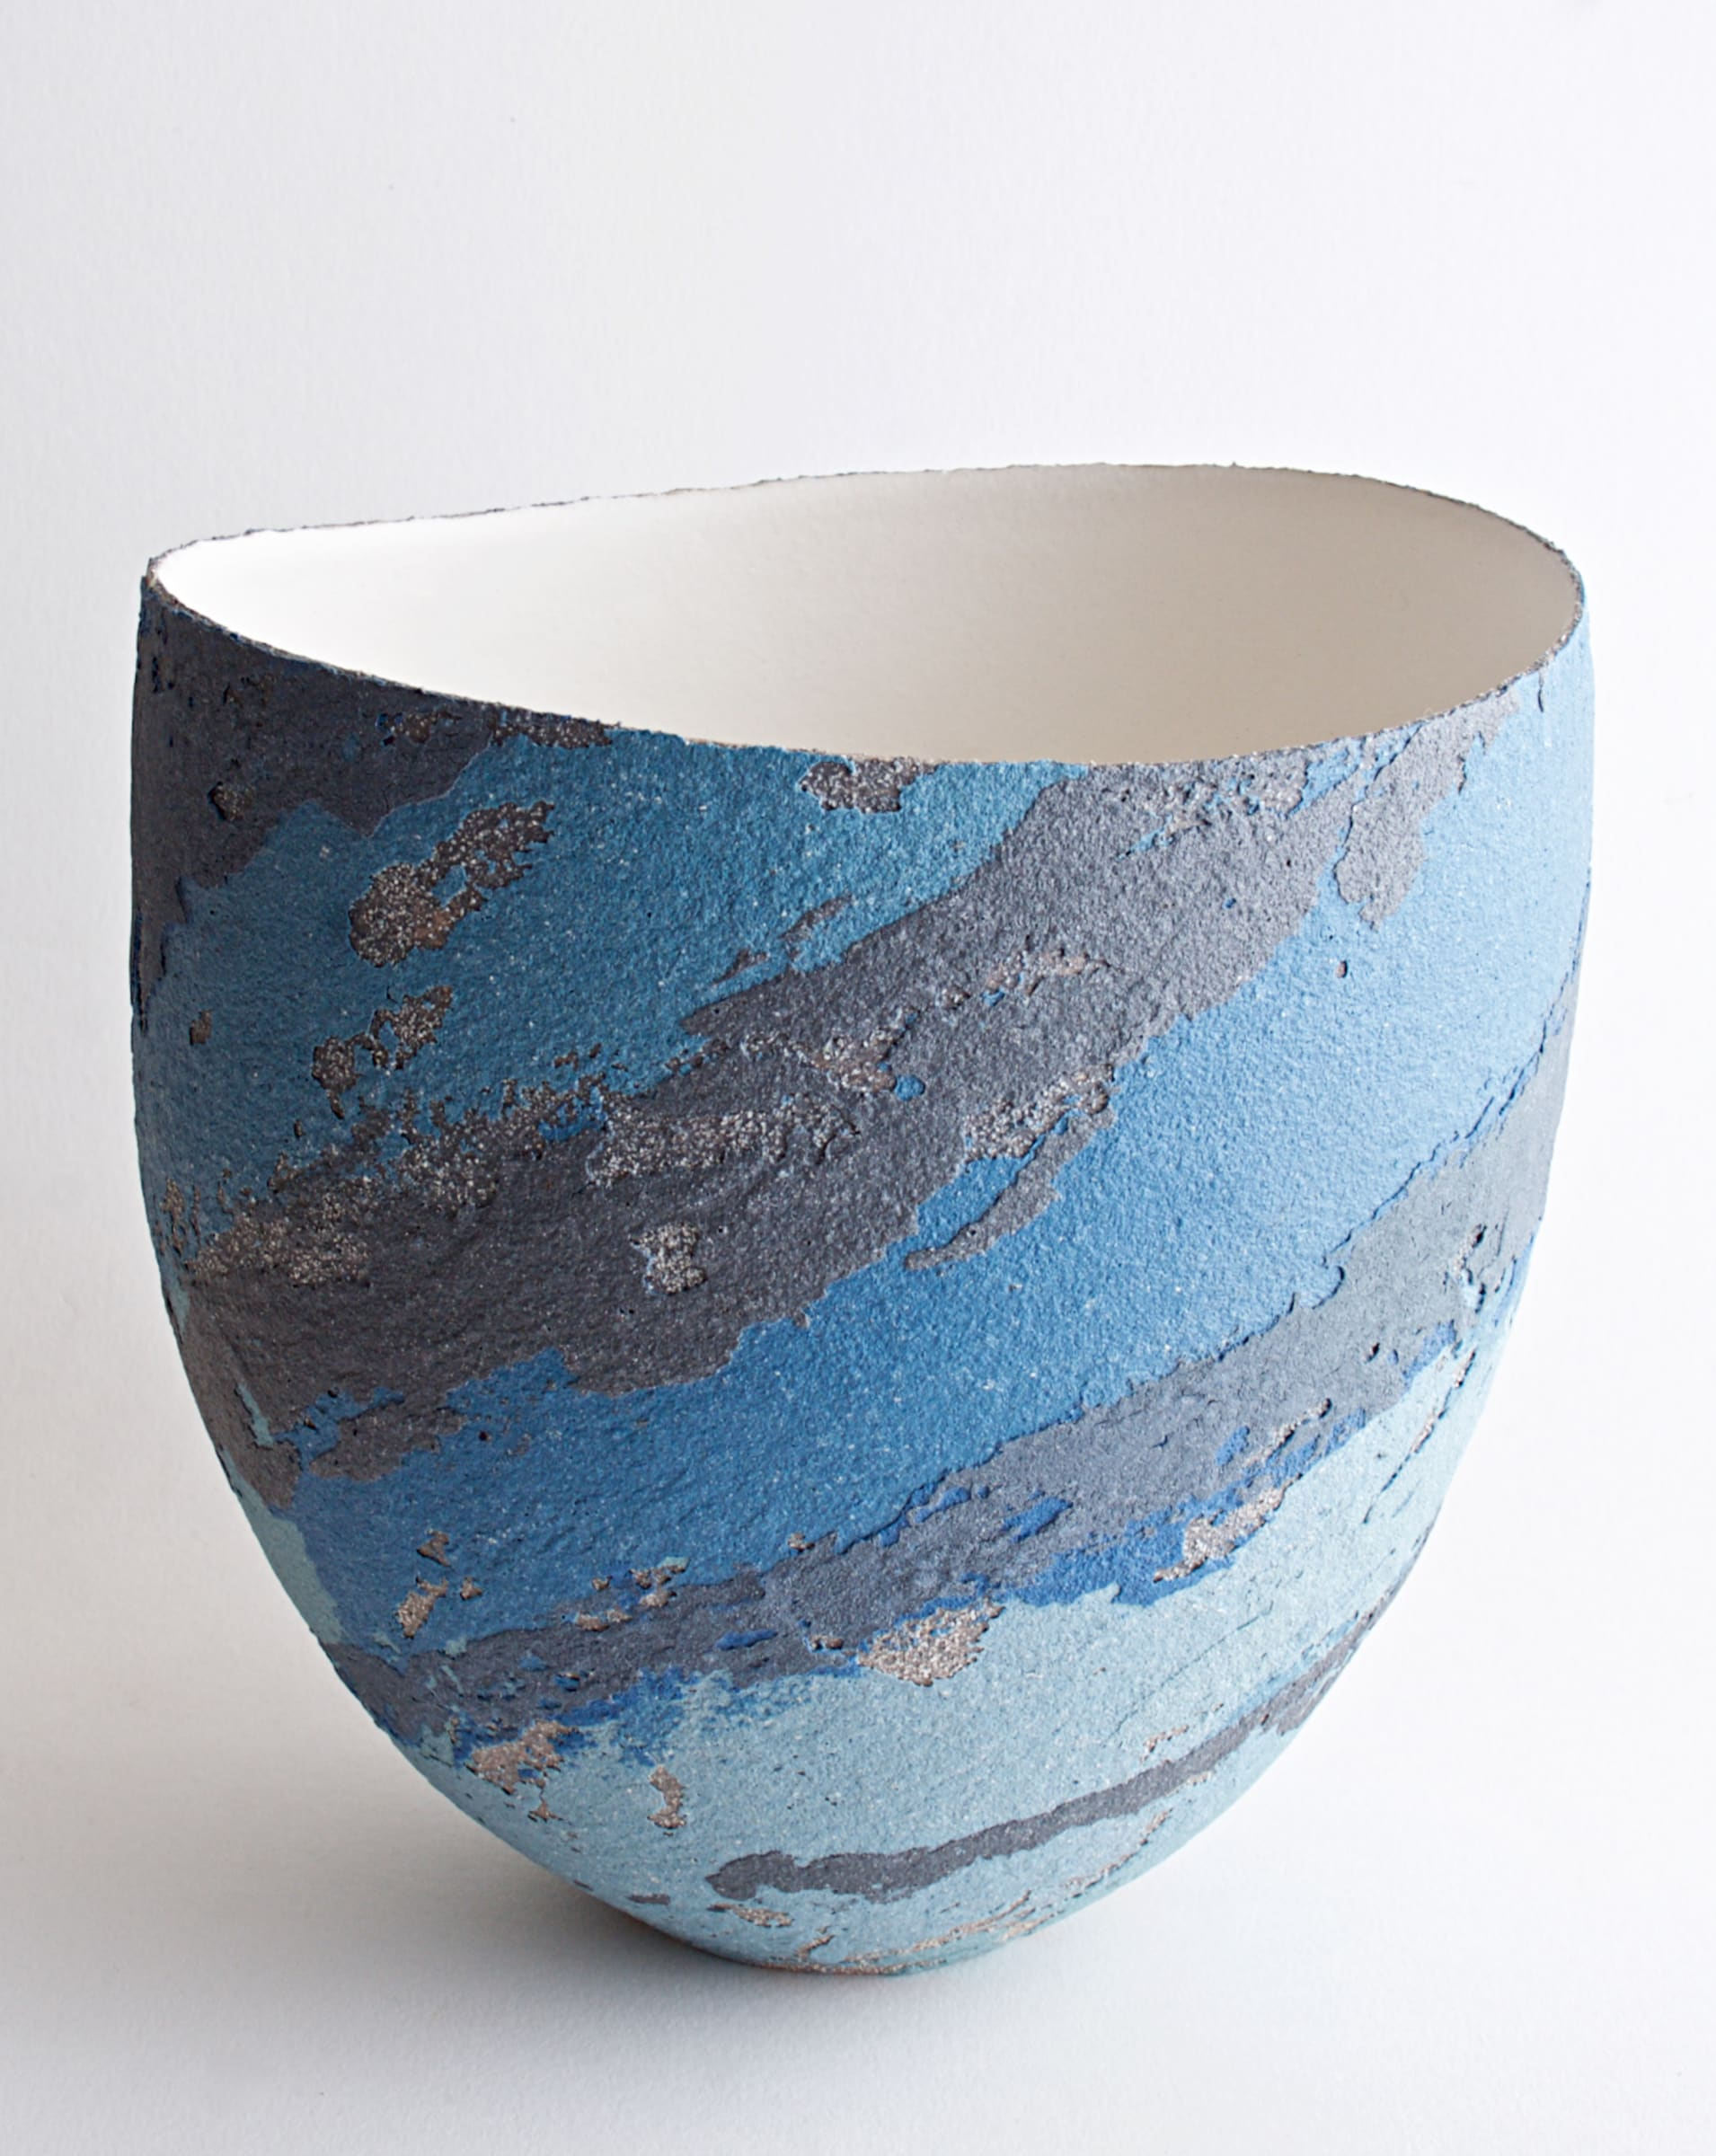 "<span class=""link fancybox-details-link""><a href=""/artists/79-clare-conrad/works/6935-clare-conrad-vessel-scooped-rim-2020/"">View Detail Page</a></span><div class=""artist""><strong>Clare Conrad</strong></div> b. 1948 <div class=""title""><em>Vessel, scooped rim</em>, 2020</div> <div class=""medium"">Stoneware</div> <div class=""dimensions"">h. 18 cm </div><div class=""price"">£385.00</div><div class=""copyright_line"">Copyright The Artist</div>"